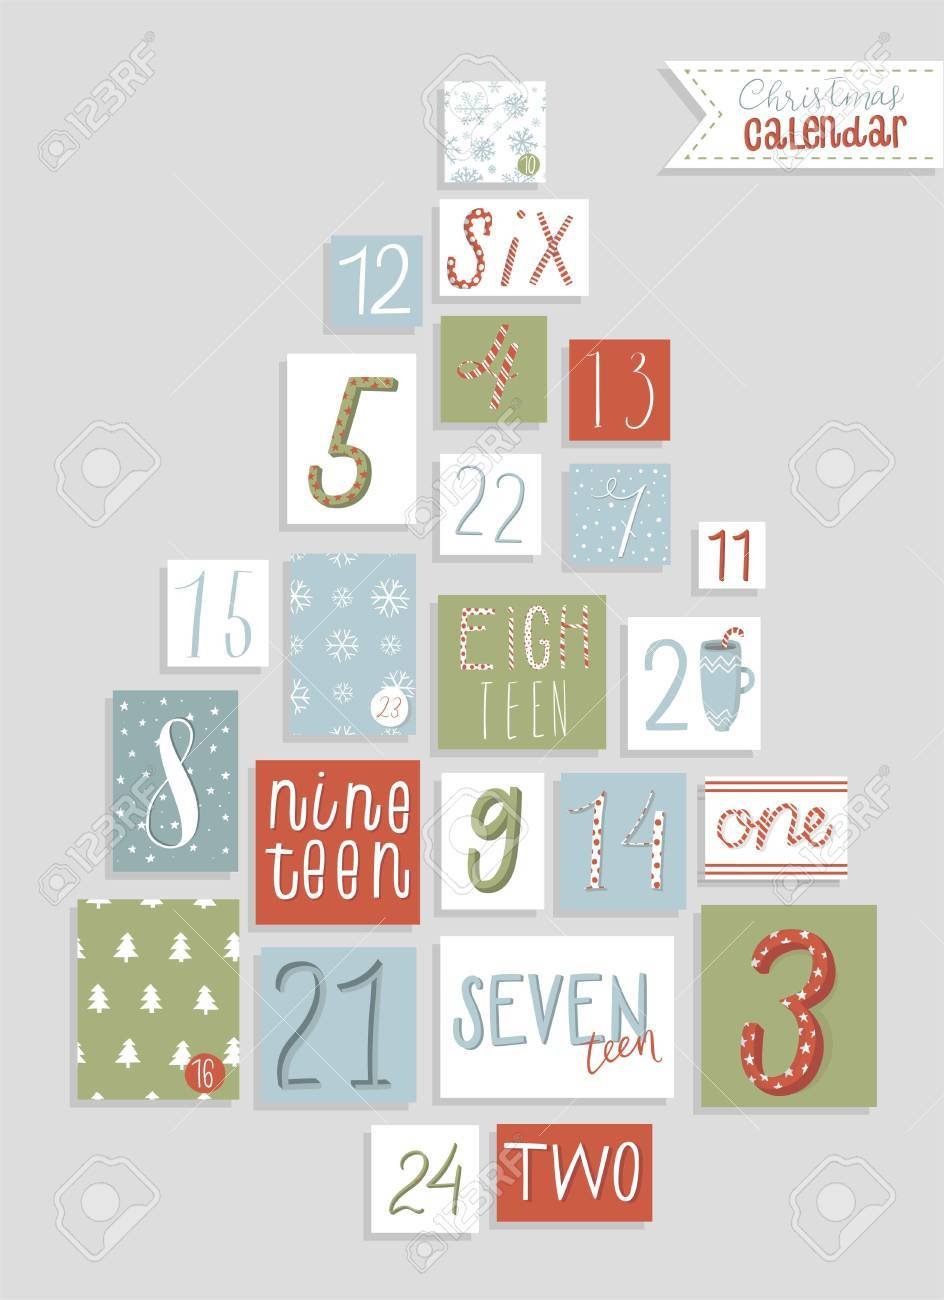 photo regarding Countdown Printable identified as Xmas arrival calendar, adorable hand drawn design and style. 20 4..